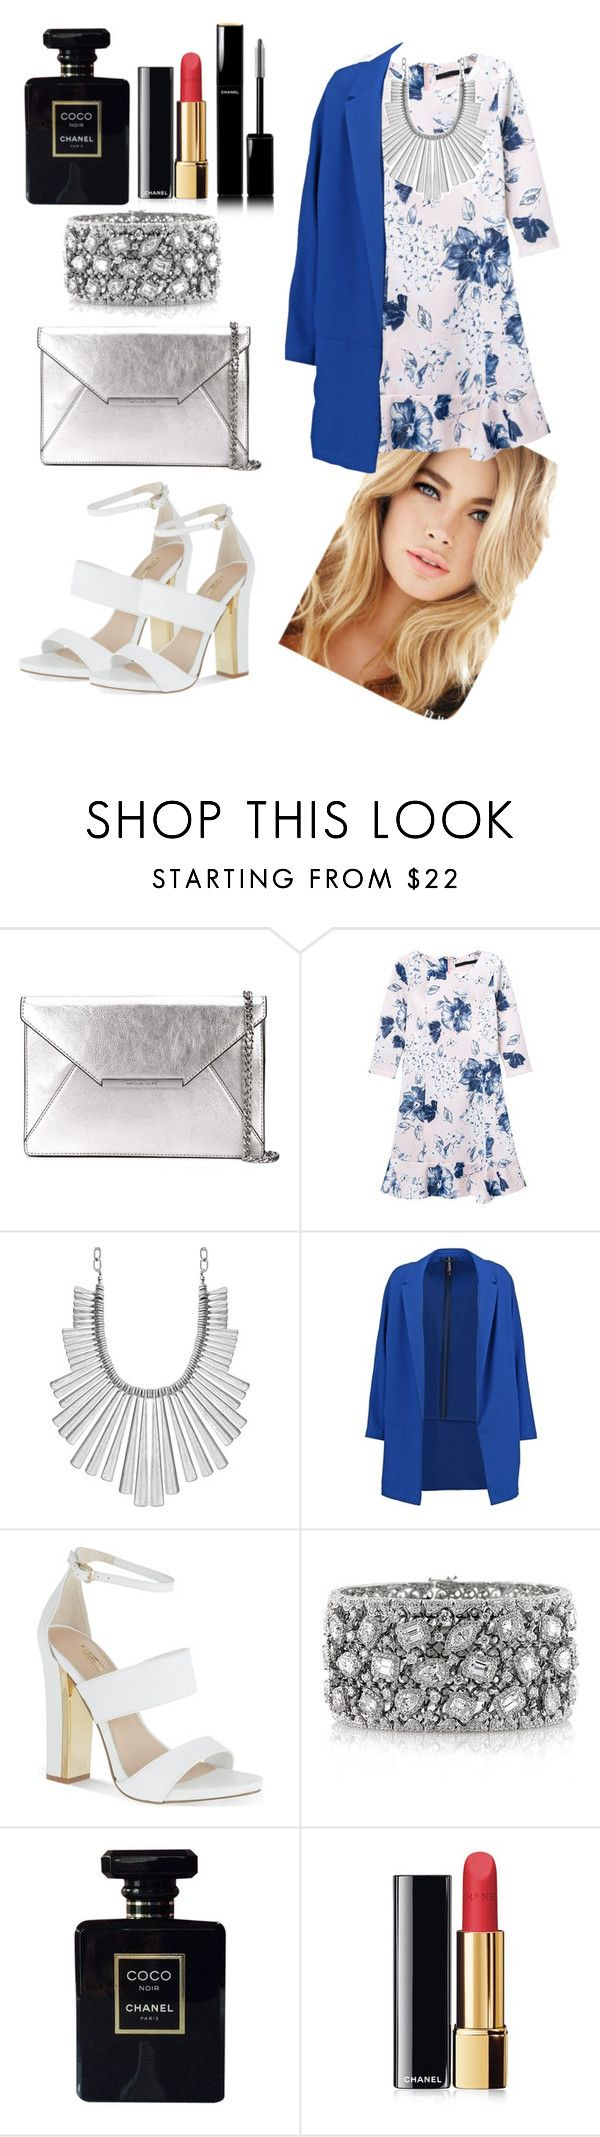 """""""Untitled #191"""" by danny-rv ❤ liked on Polyvore featuring beauty, MICHAEL Michael Kors, Lucky Brand, Dorothy Perkins, Carvela, Mark Broumand and Chanel"""